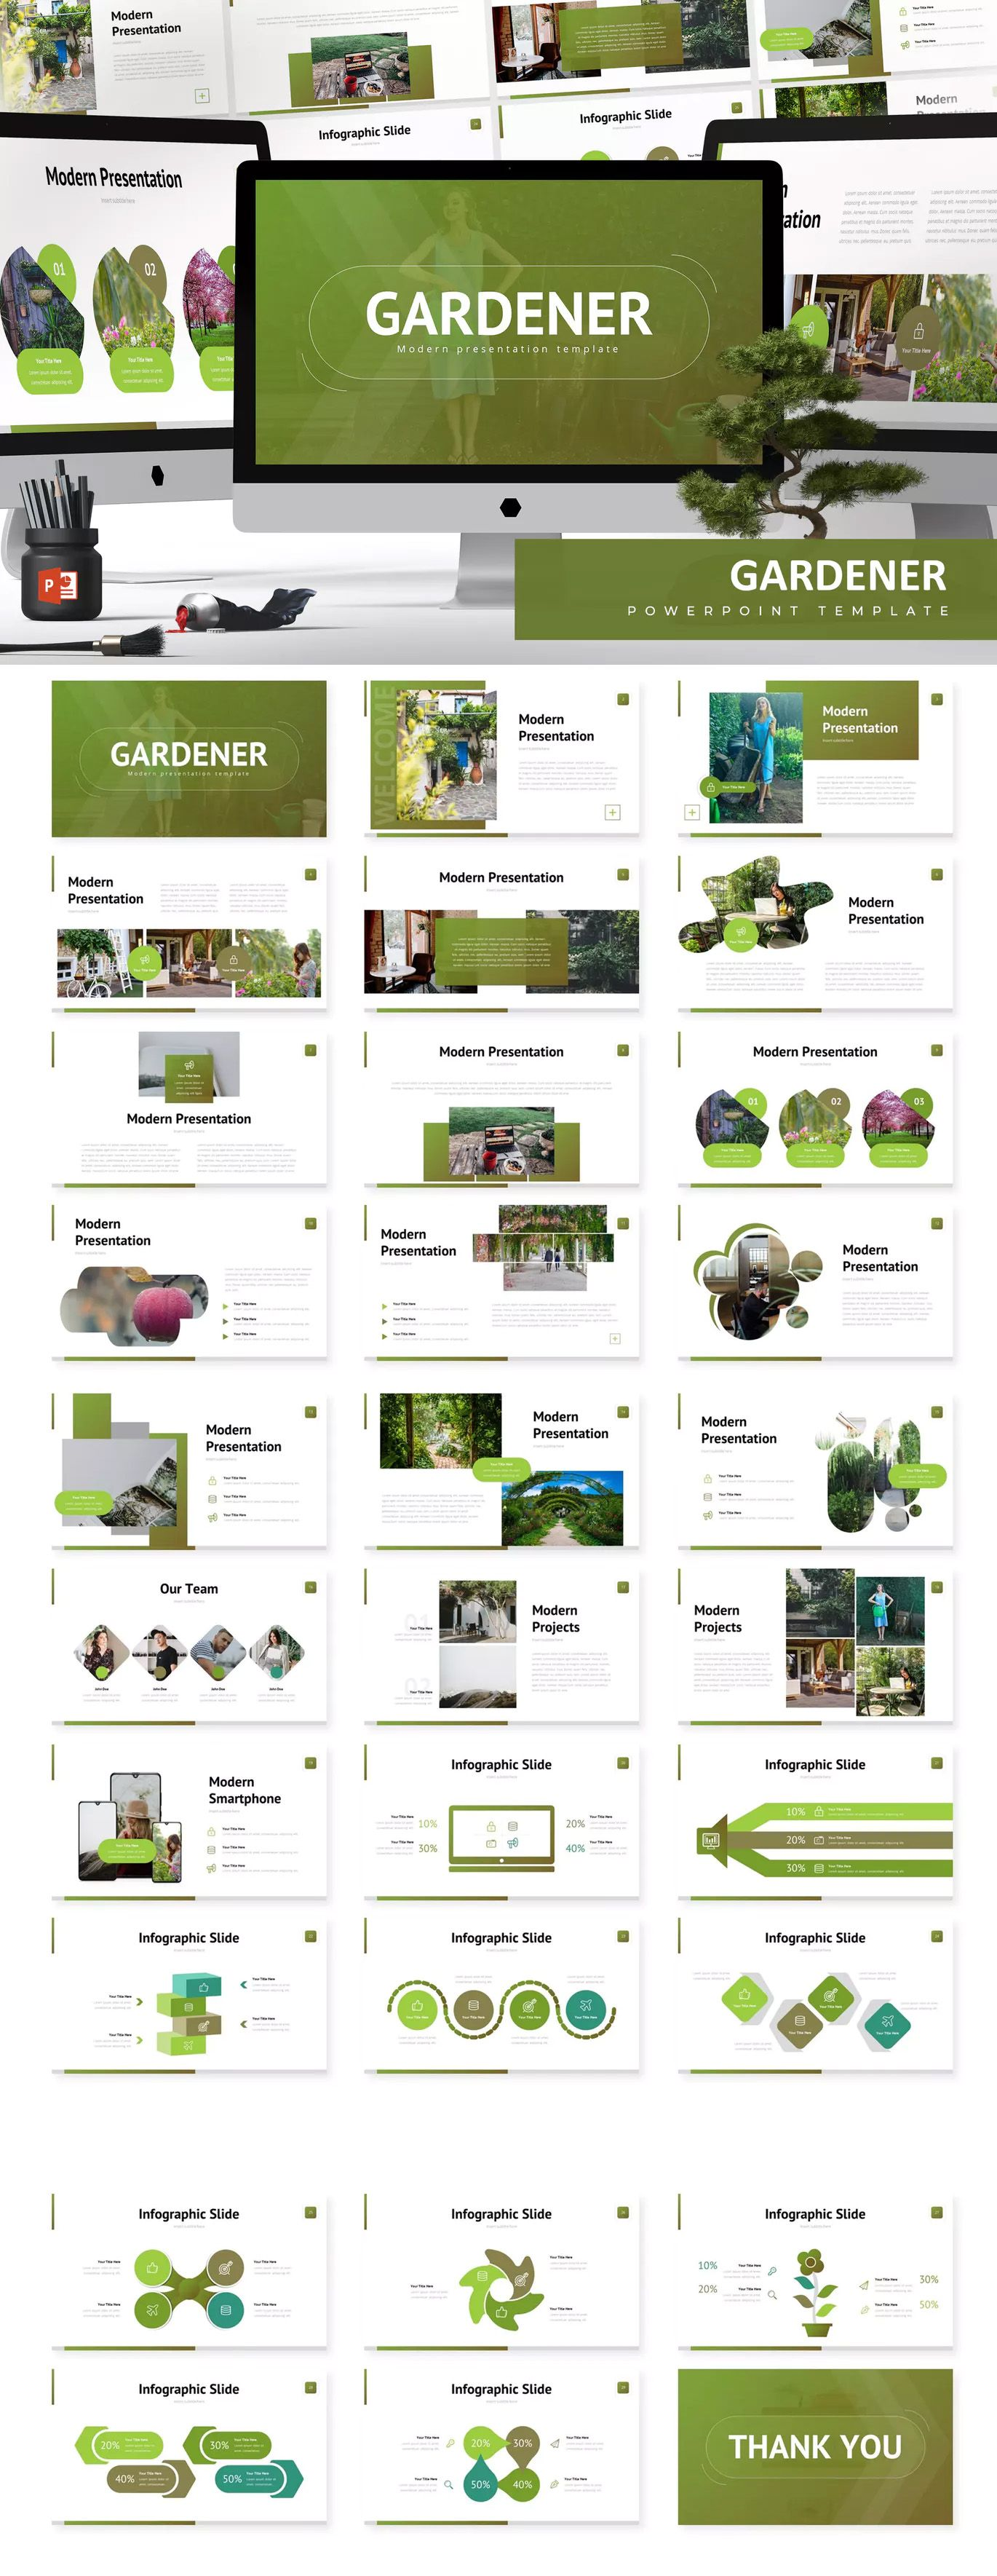 Gardener - Powerpoint Template by aqrstudio on ...